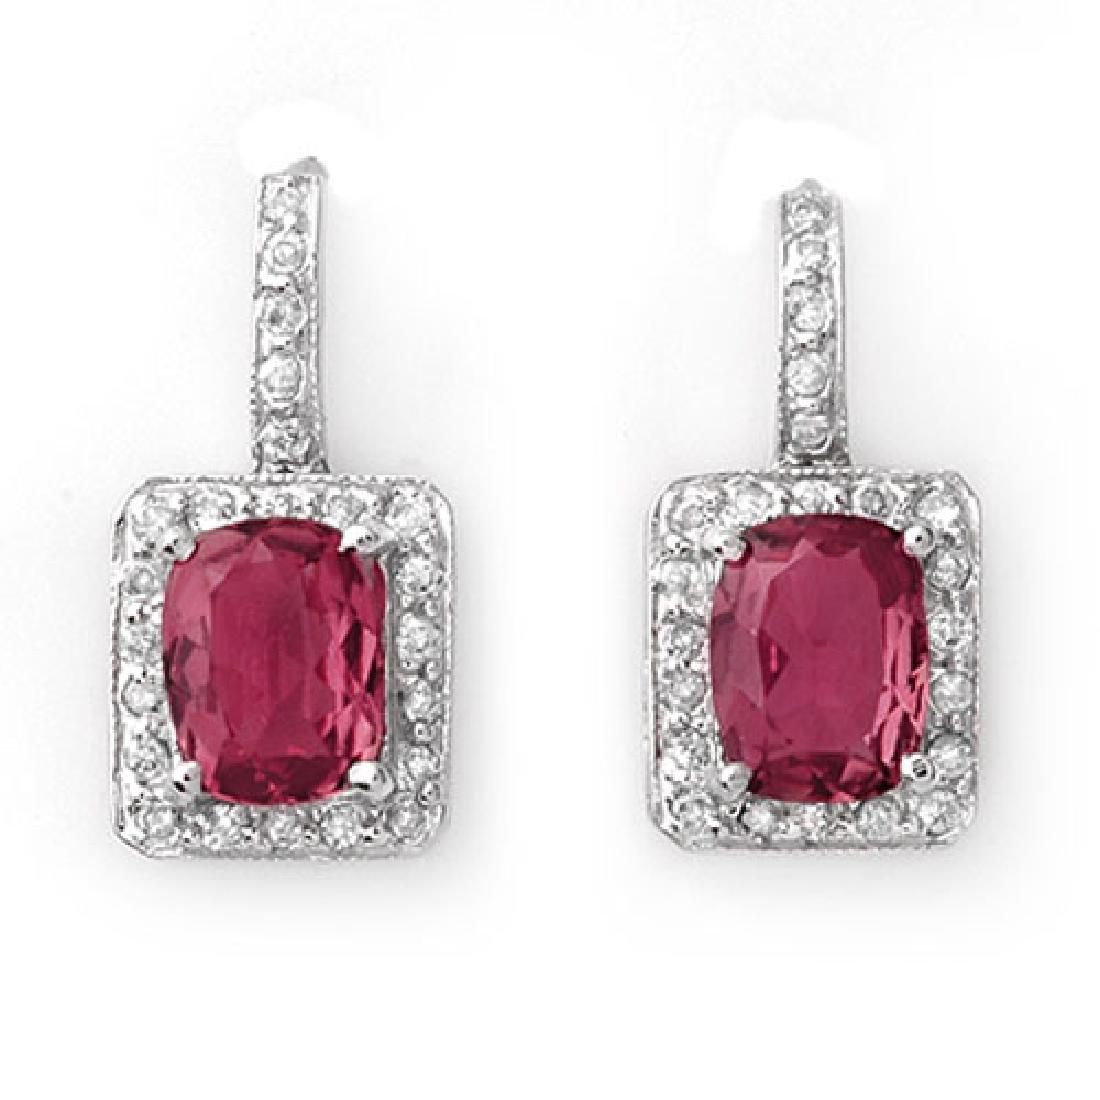 3.50 CTW Pink Tourmaline & Diamond Earrings 14K White